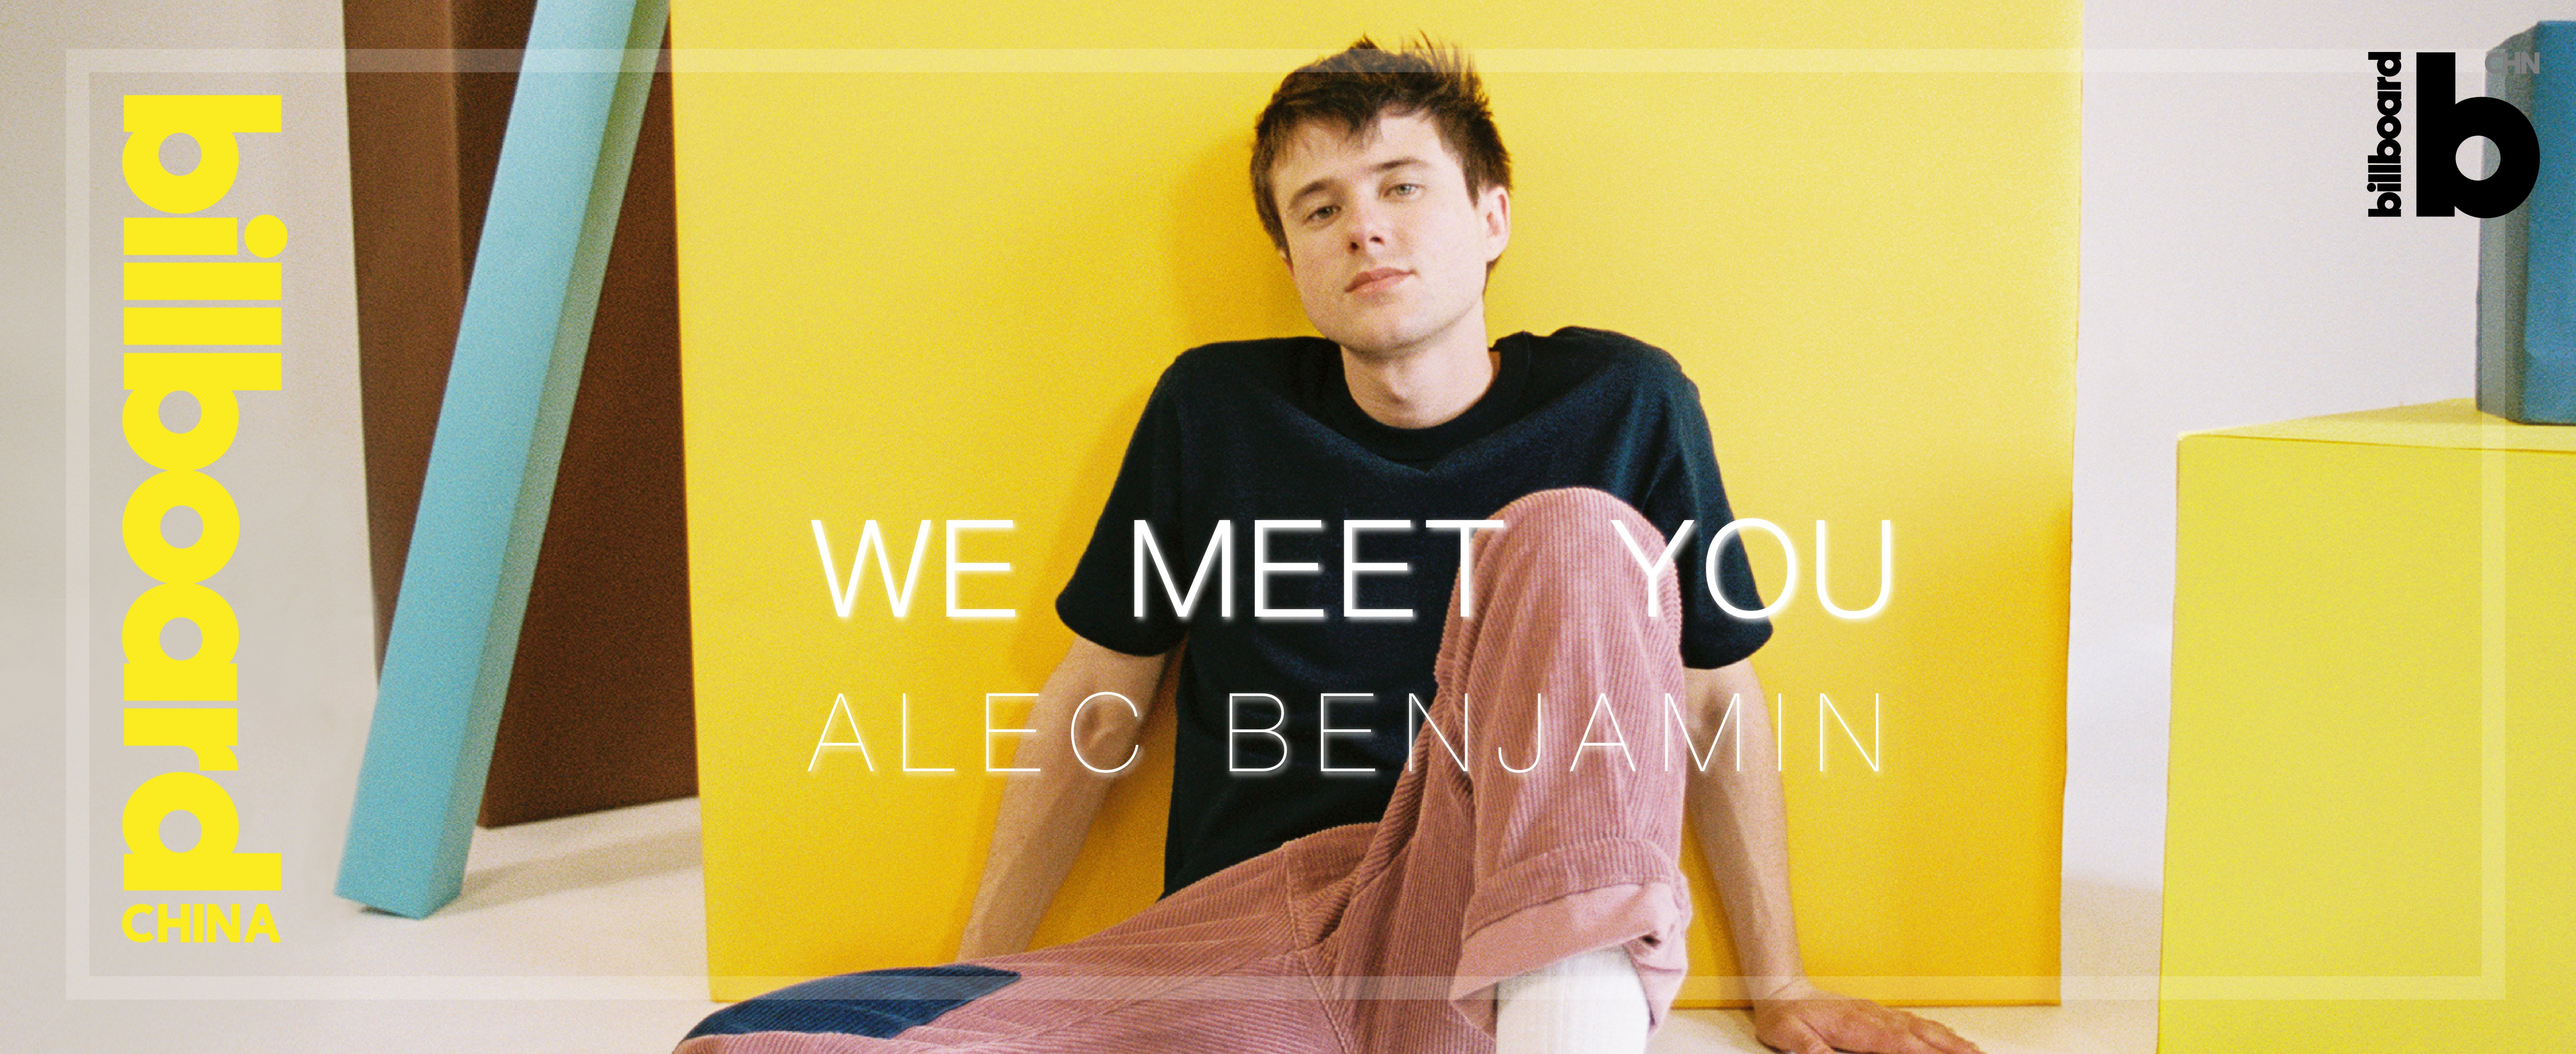 WE MEET YOU 第八十期丨Alec Benjamin:吉他少年初长成